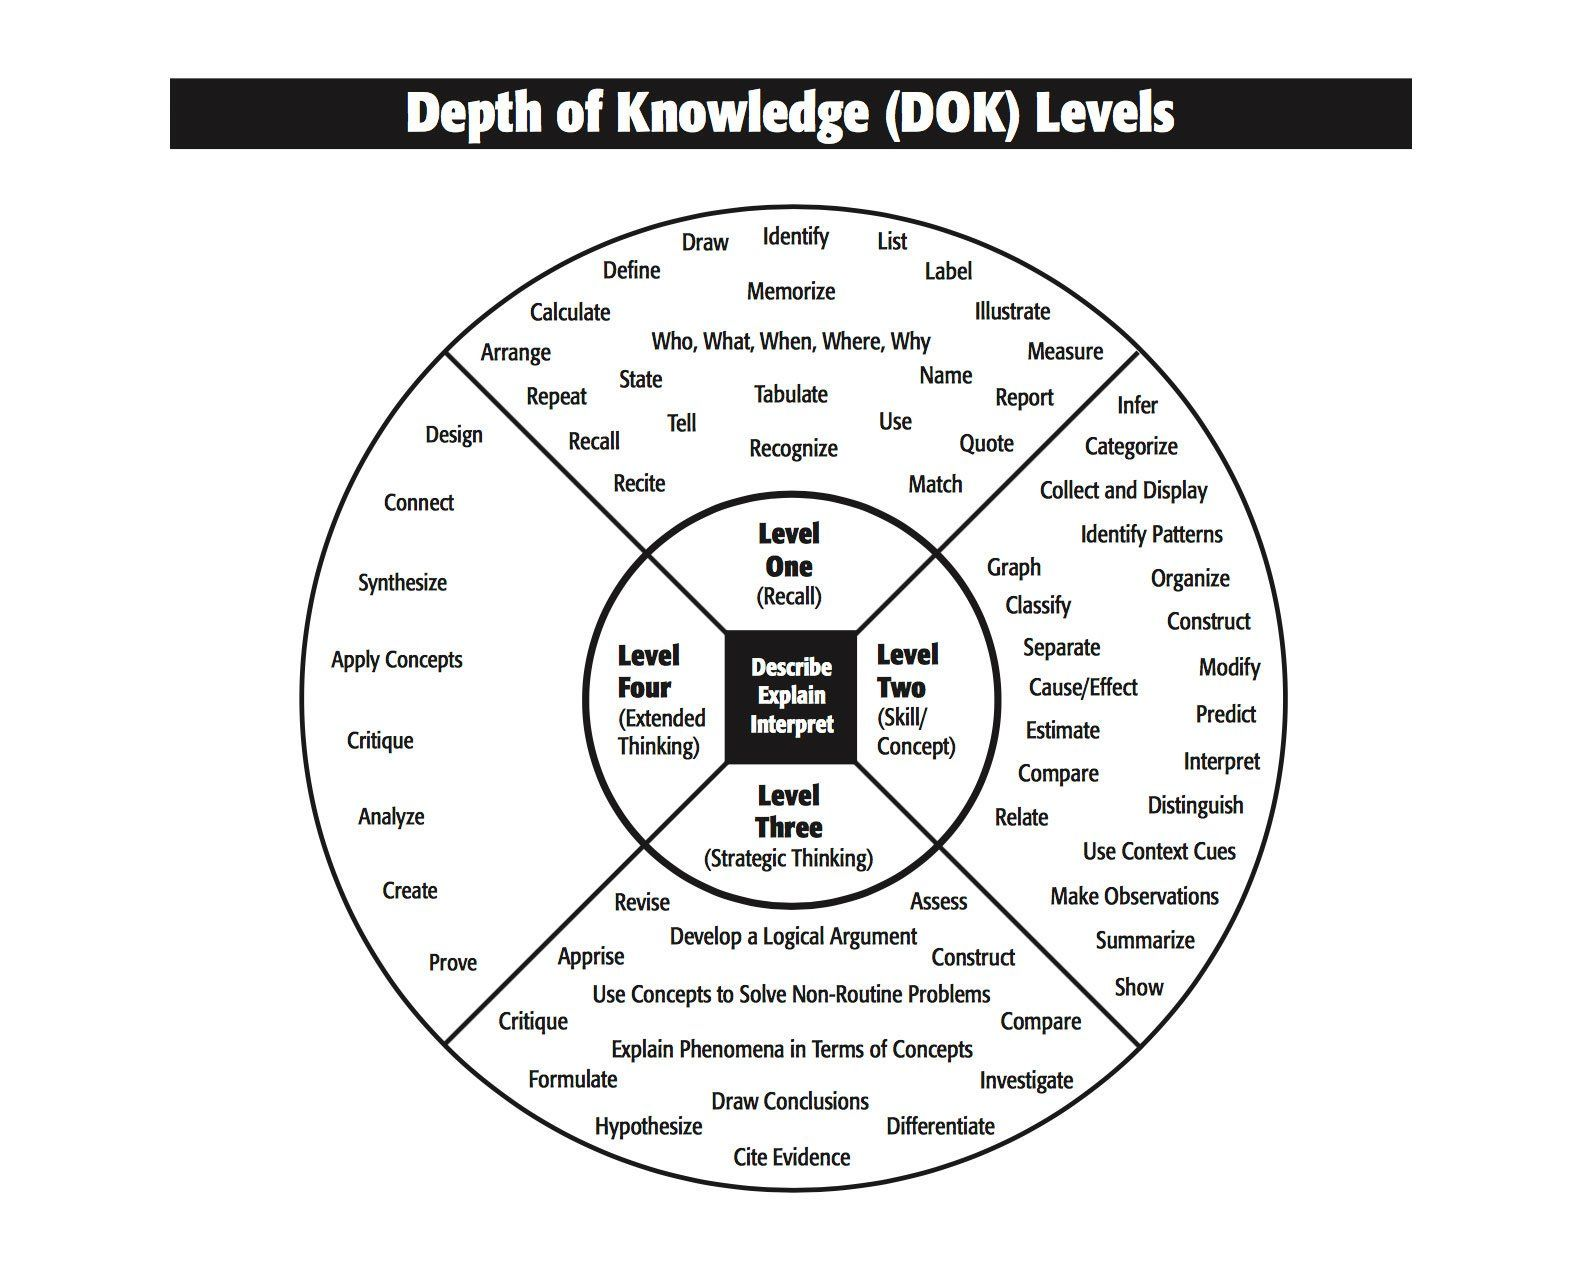 Sharing the Depth of Knowledge Framework With Students